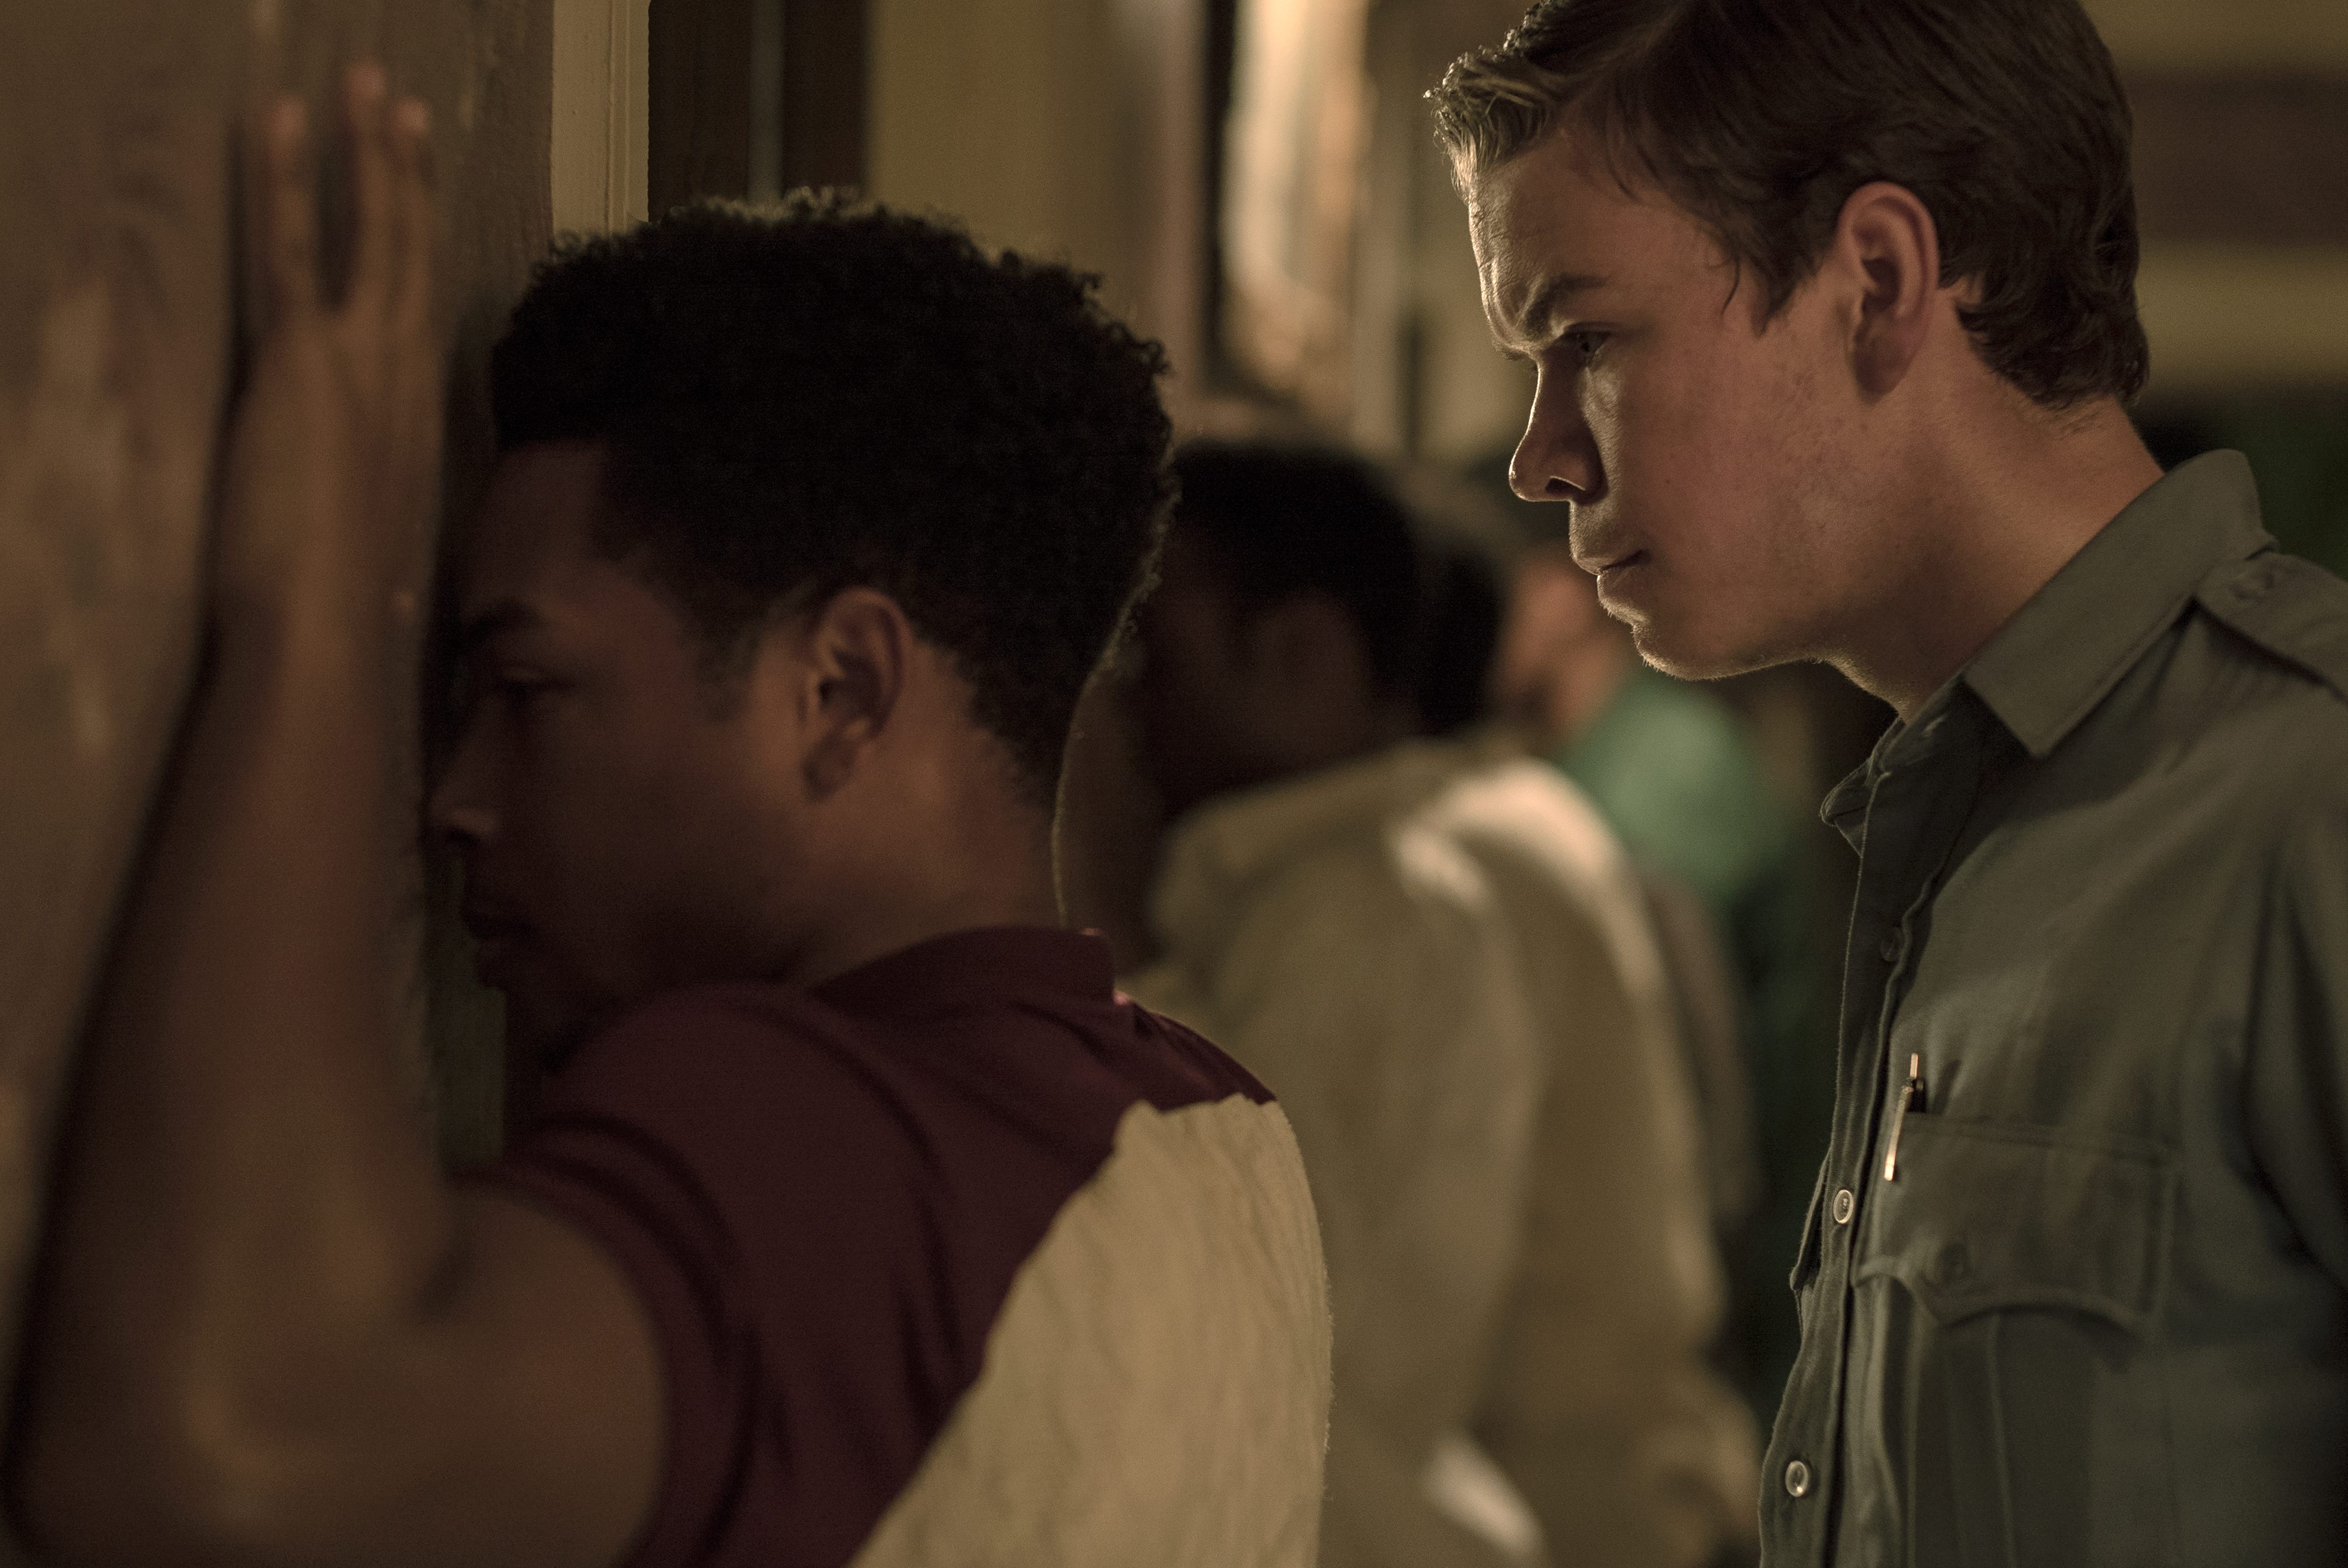 Anthony Mackie, Will Poulter, John Boyega, and Algee Smith in Detroit (2017)